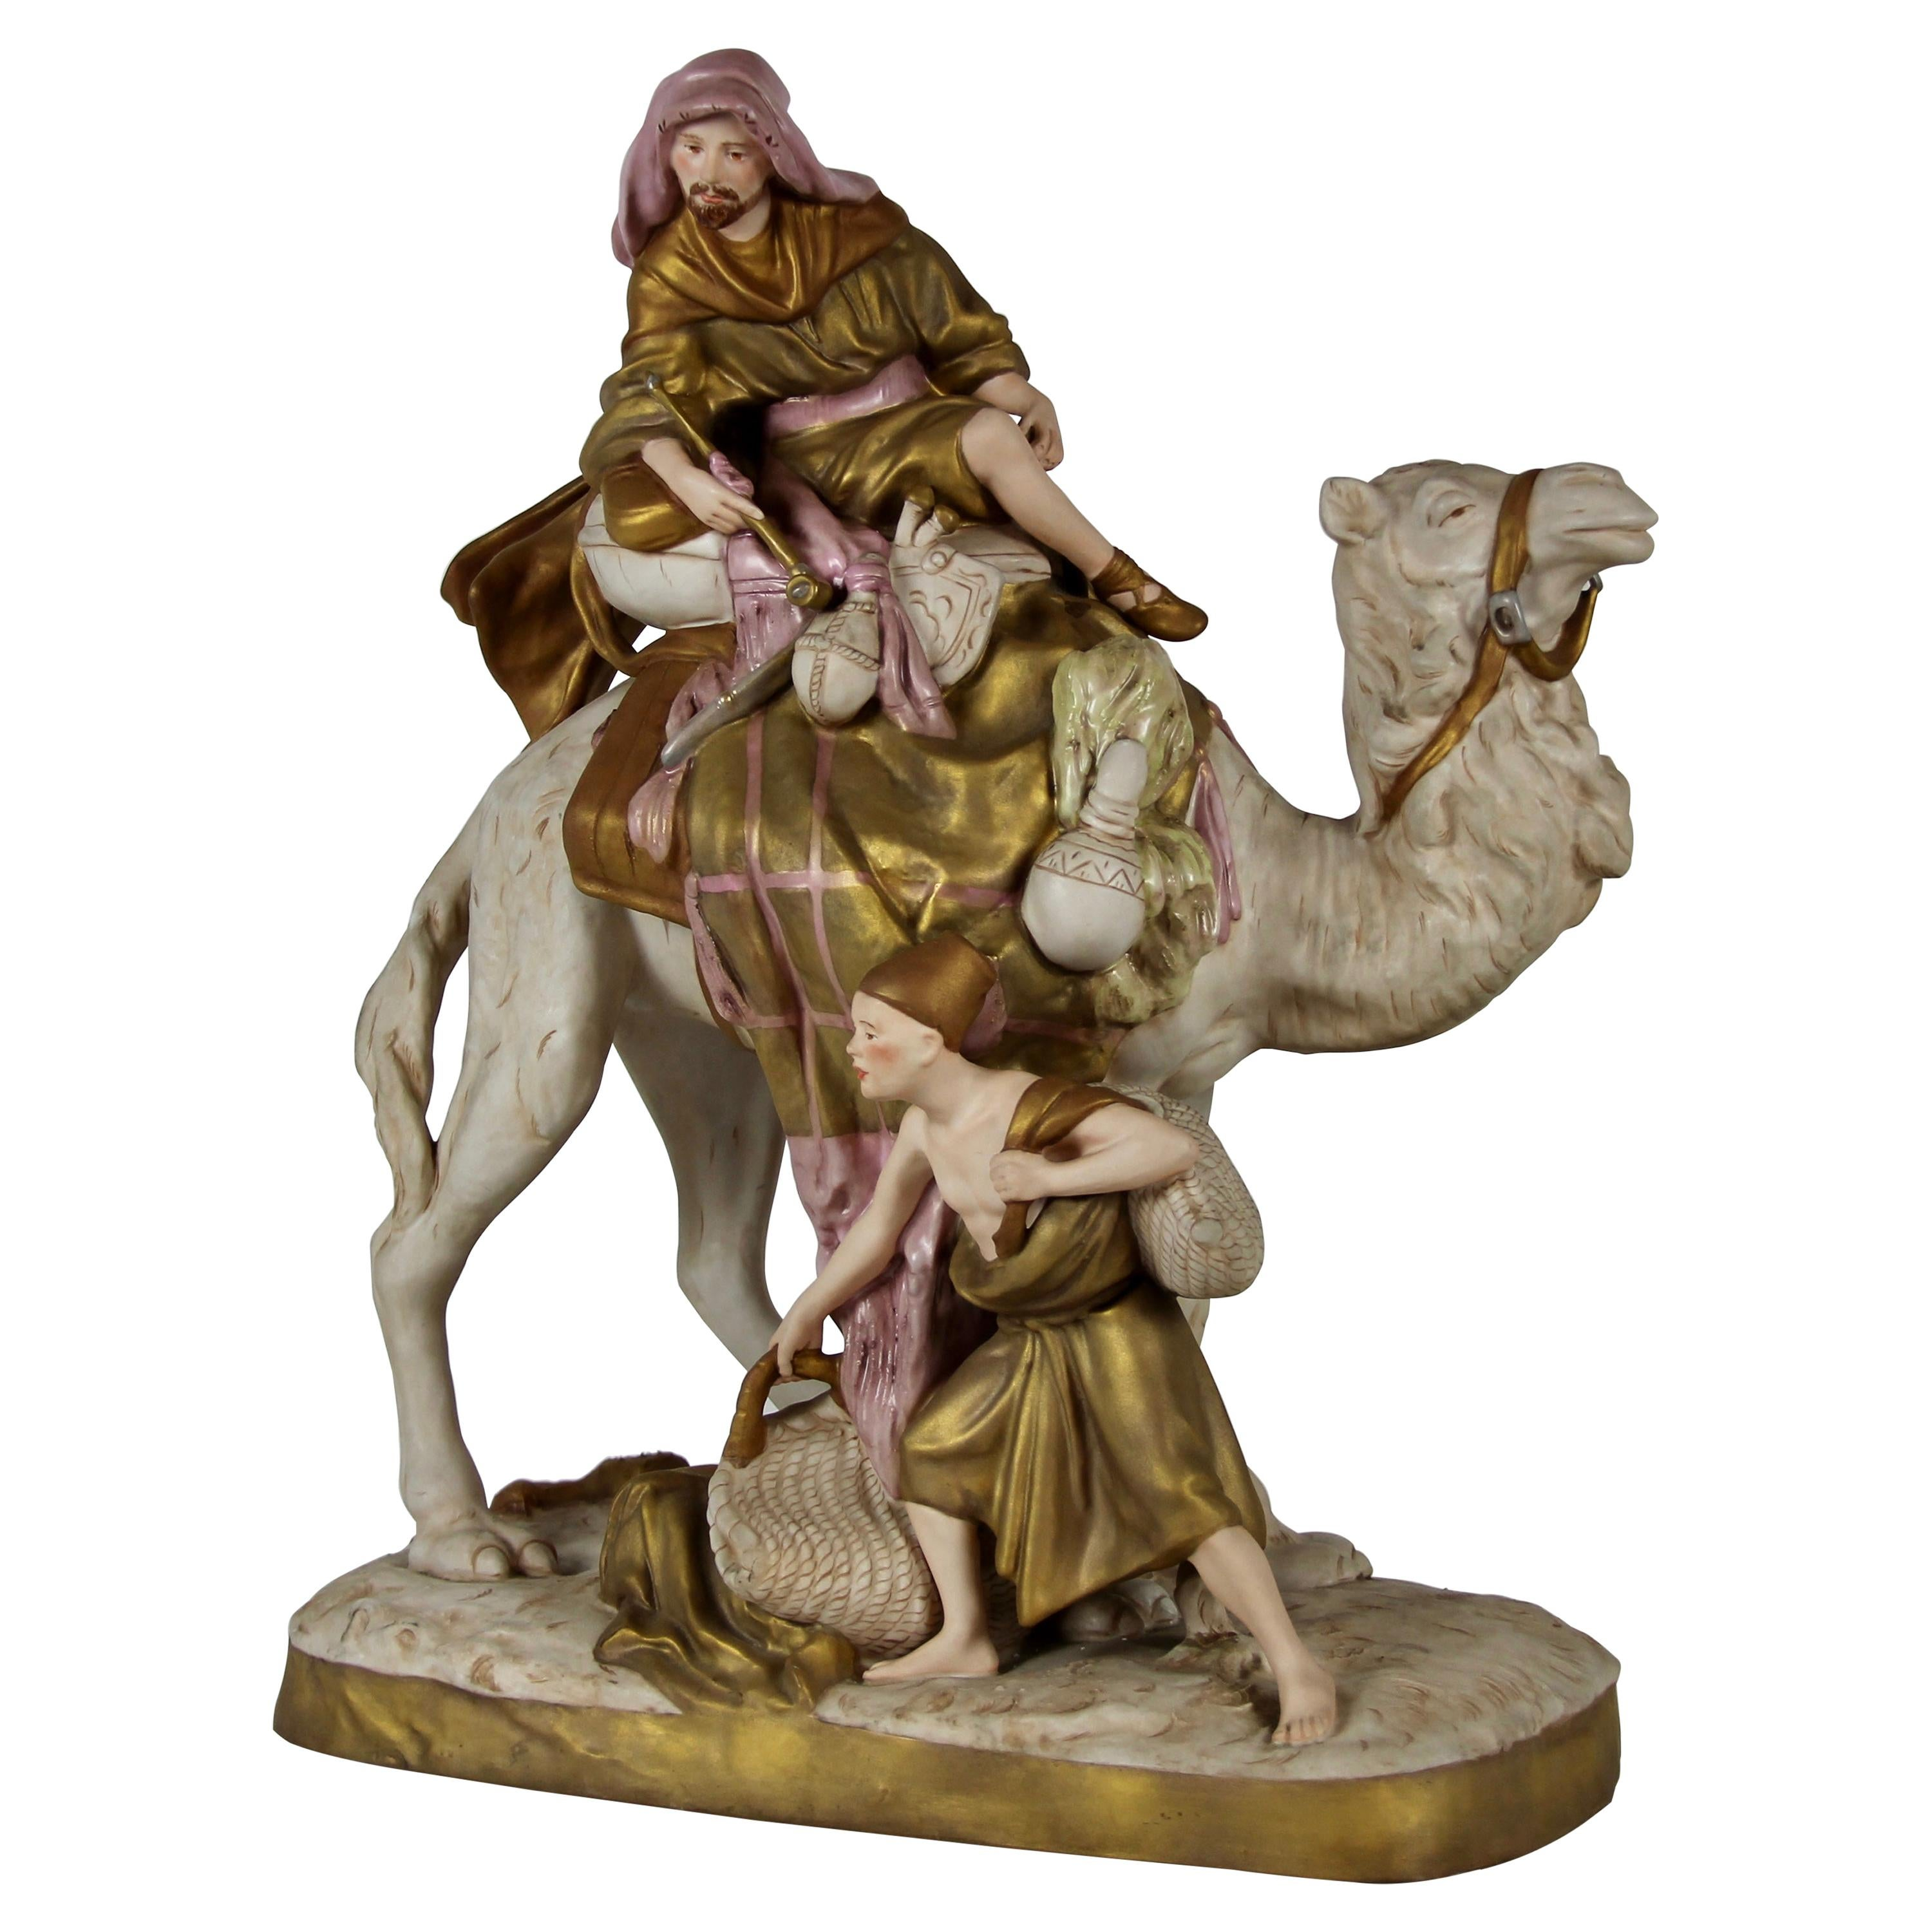 Royal Dux Porcelain Group of a Bedouin Camel Rider with His Attendant